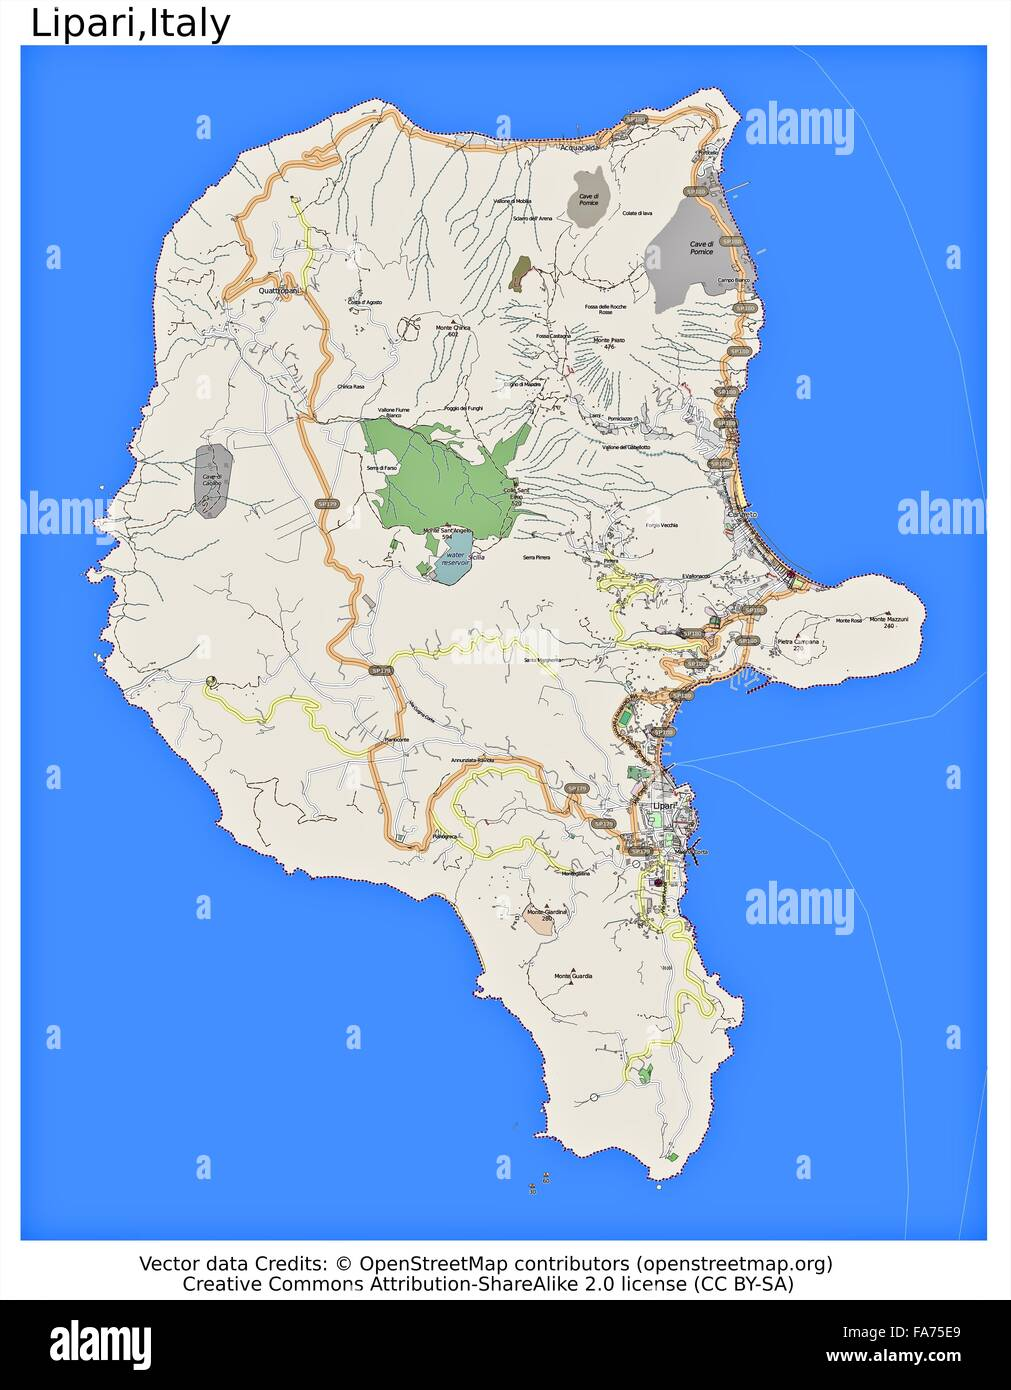 Lipari Italy location map Stock Photo 92356385 Alamy